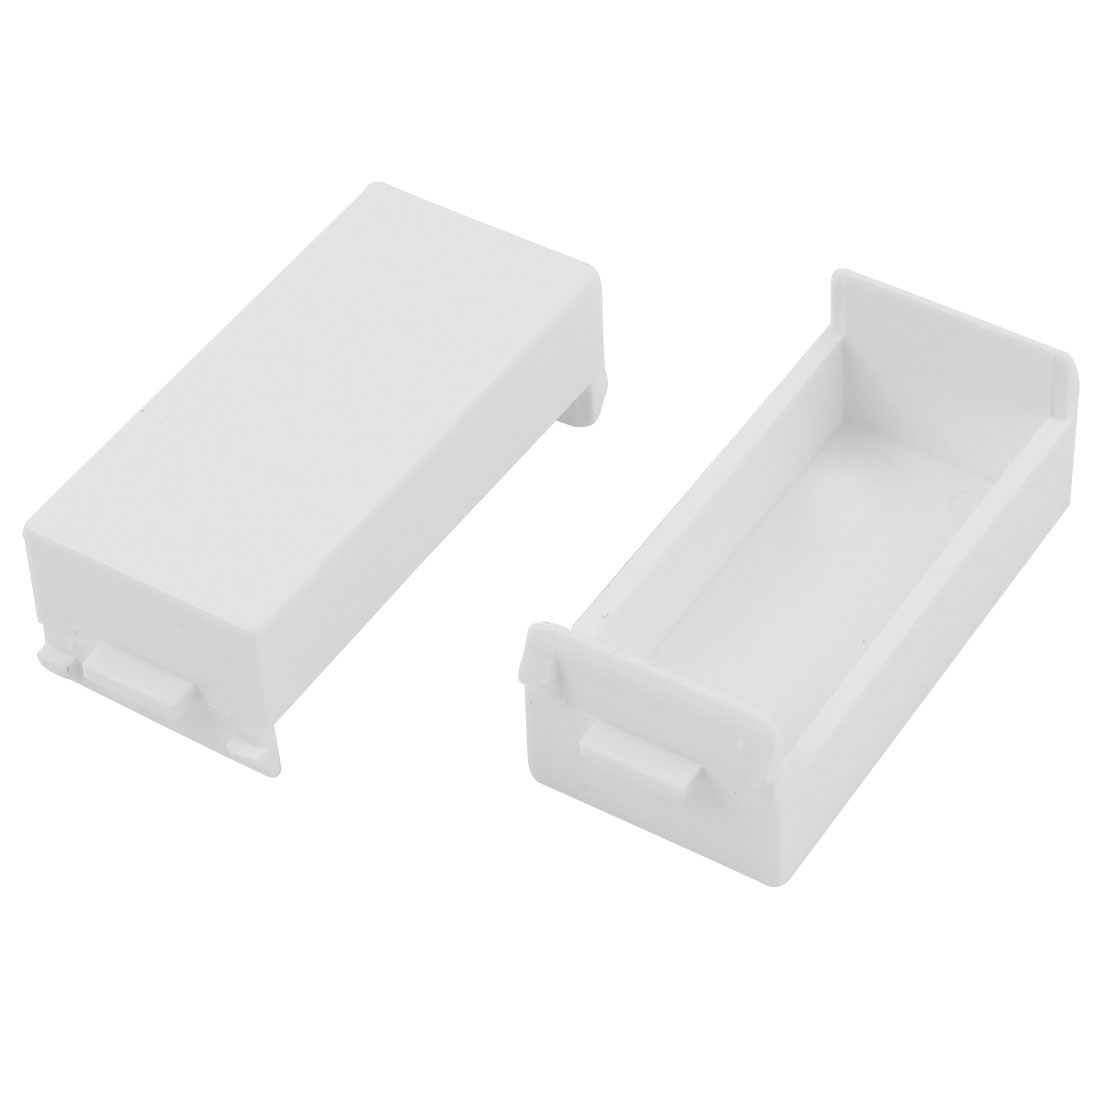 2 Pcs White Plastic Blank Wall Plate Single Position Socket Cover